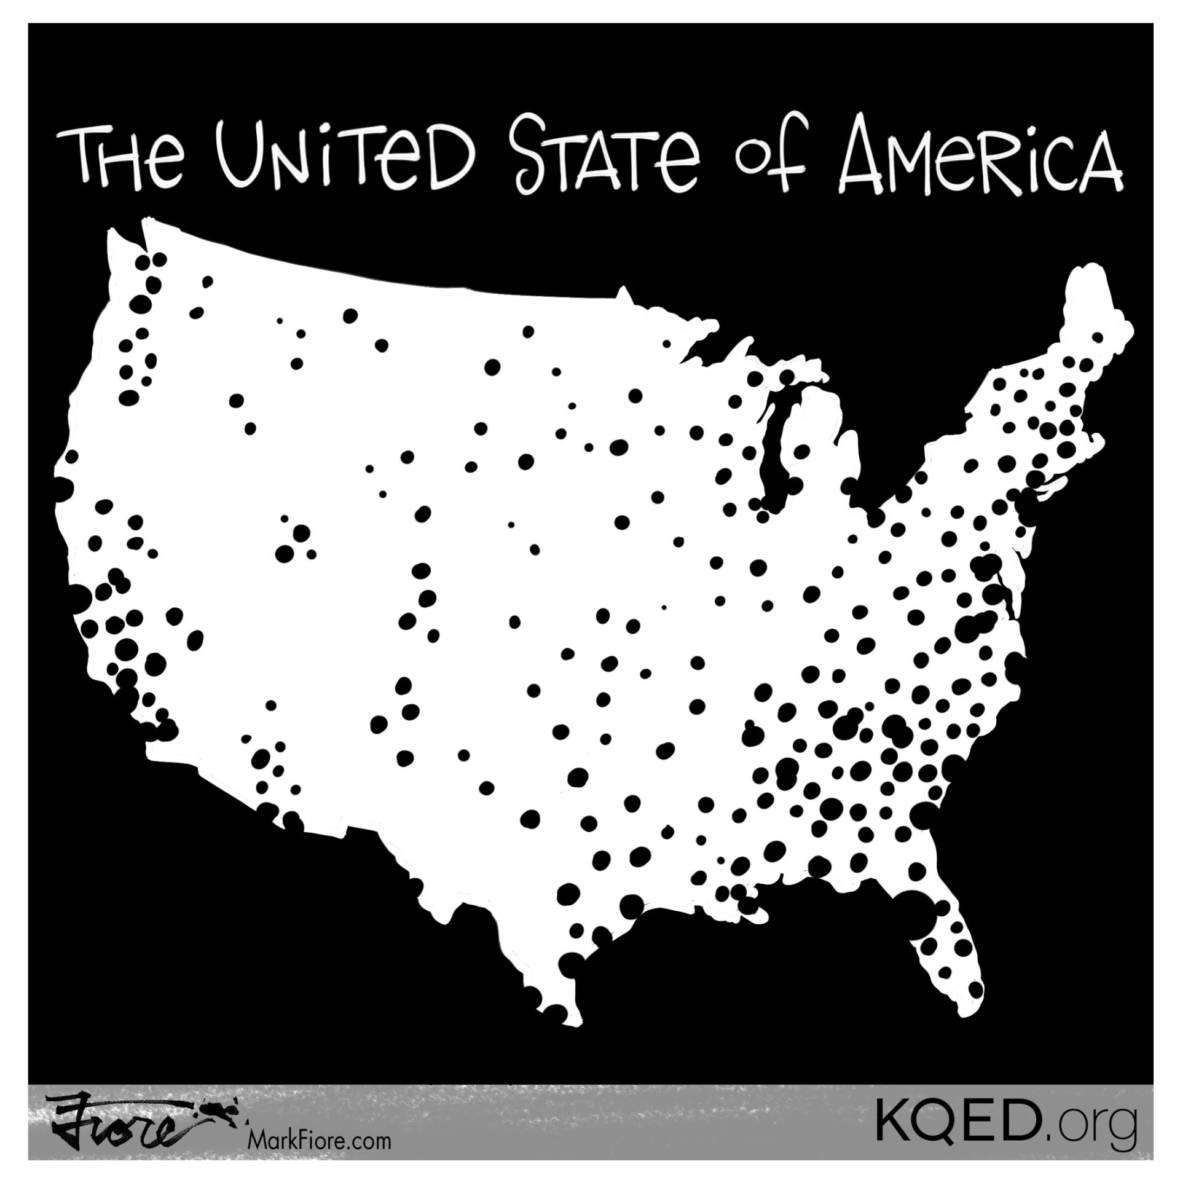 United State of America by Mark Fiore